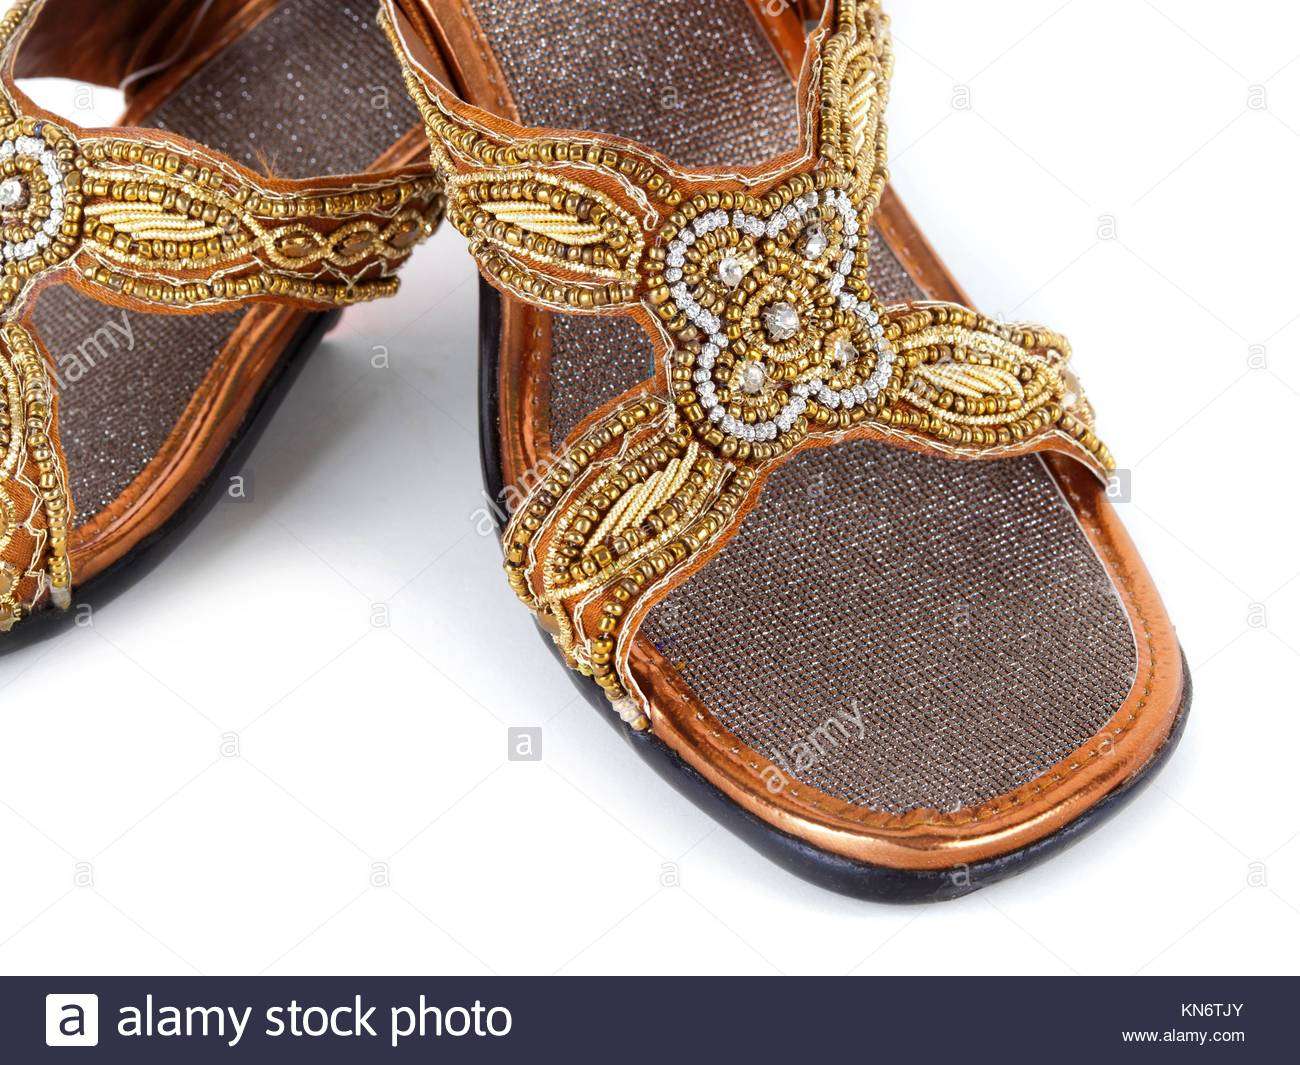 065ed416a0564 Pair of traditional Indian sandals on white background Stock Photo ...